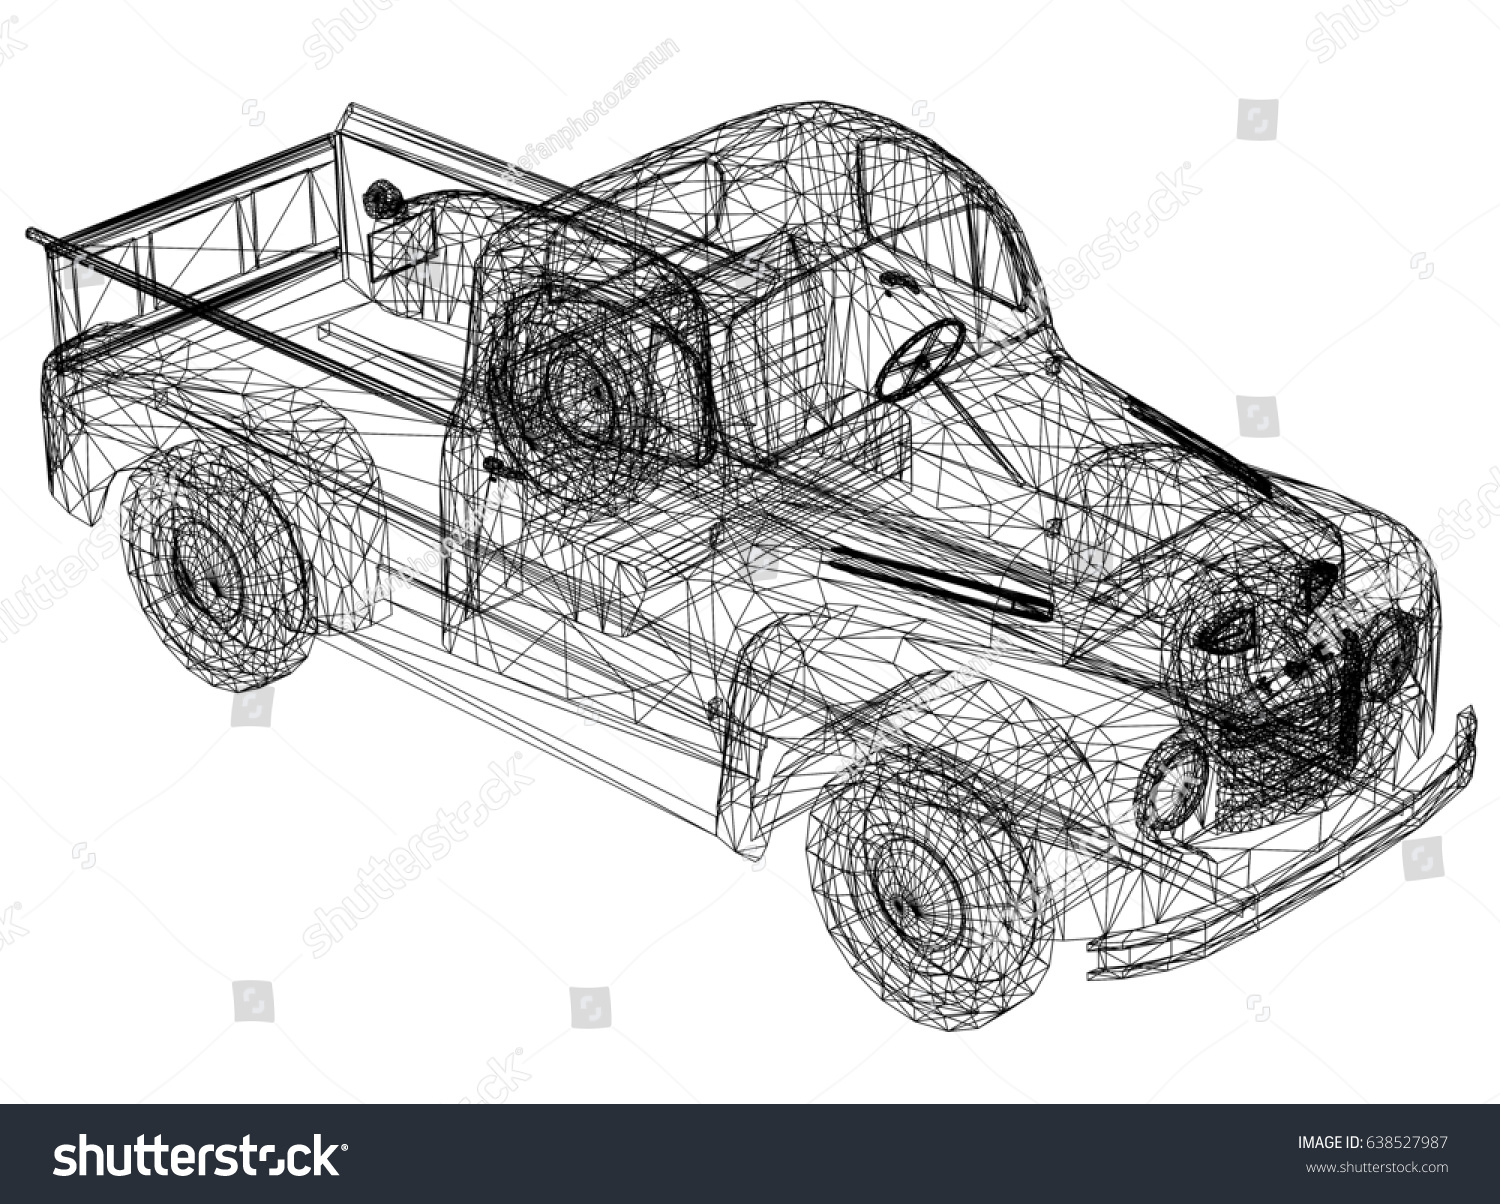 Car Drawing 3 D Perspective Stock Illustration 638527987 - Shutterstock